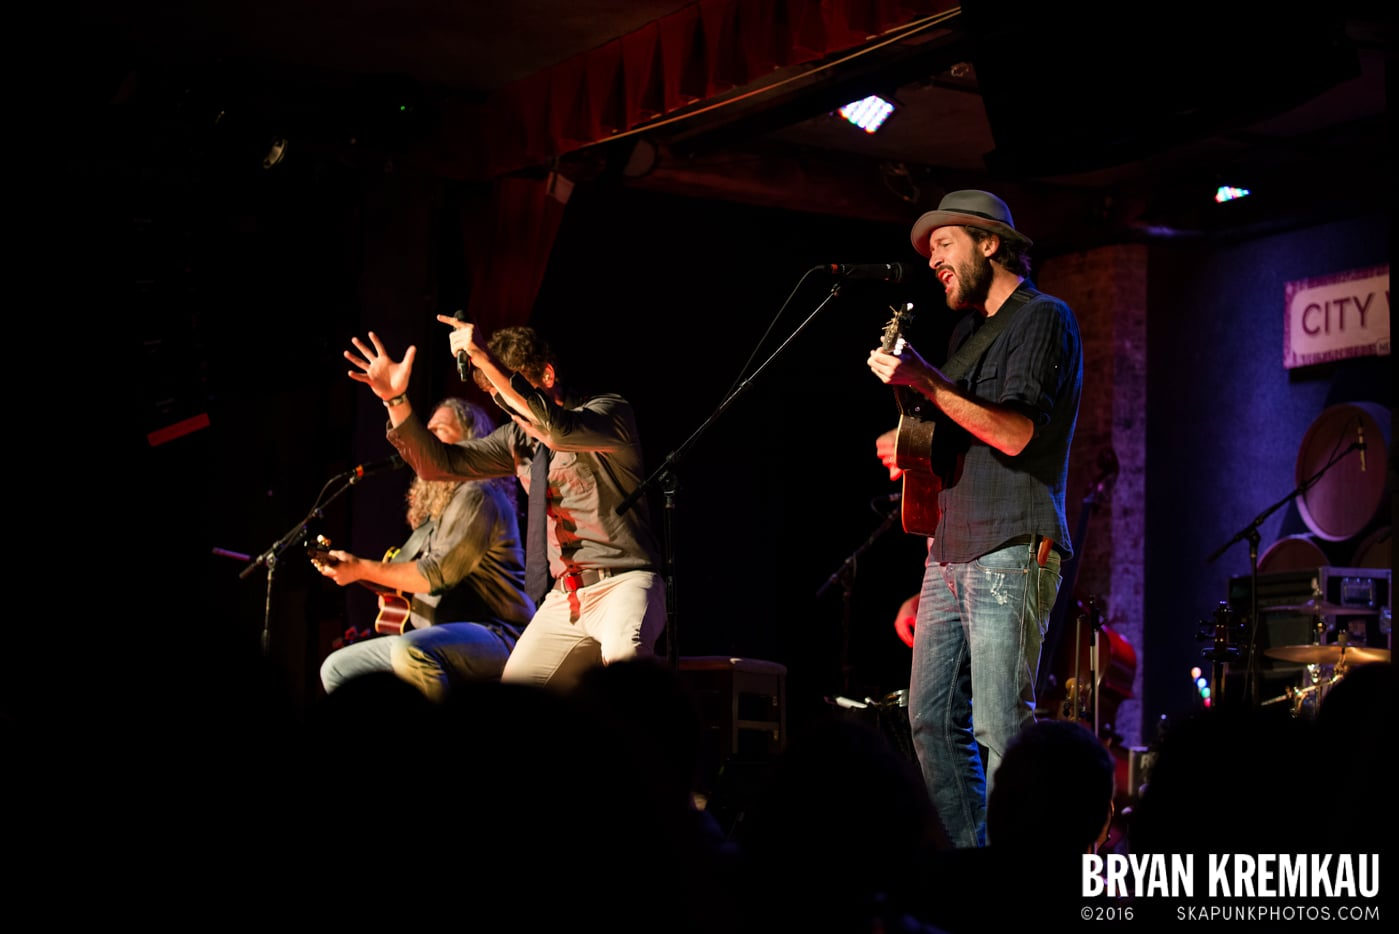 Carbon Leaf @ City Winery, NYC - July 11th 2013 - Bryan Kremkau (19)